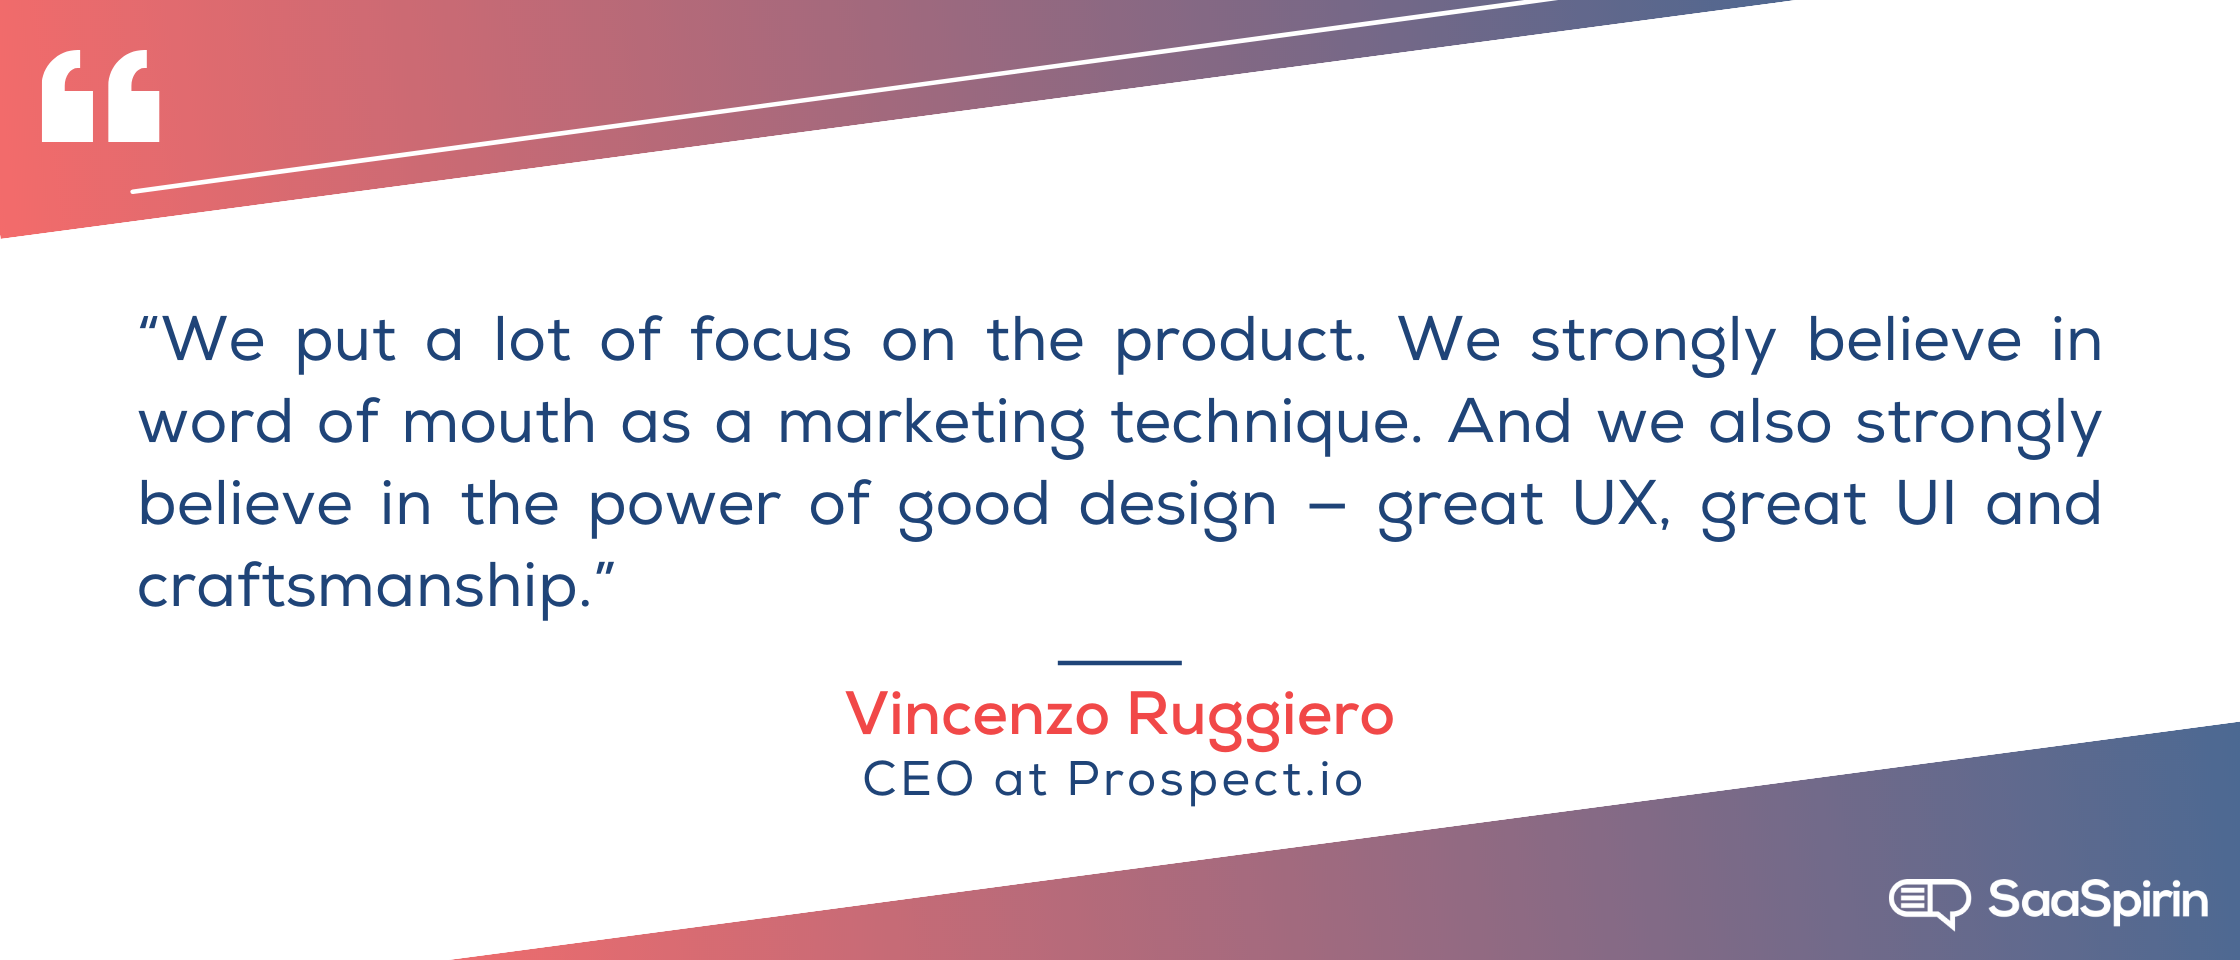 We-put-a-lot-of-focus-on-the-product-We-strongly-believe-in-word-of-mouth-as-a-marketing-technique-And-we-also-strongly-believe-in-the-power-of-good-design-great-UX-great-UI-and craftsmanship.png